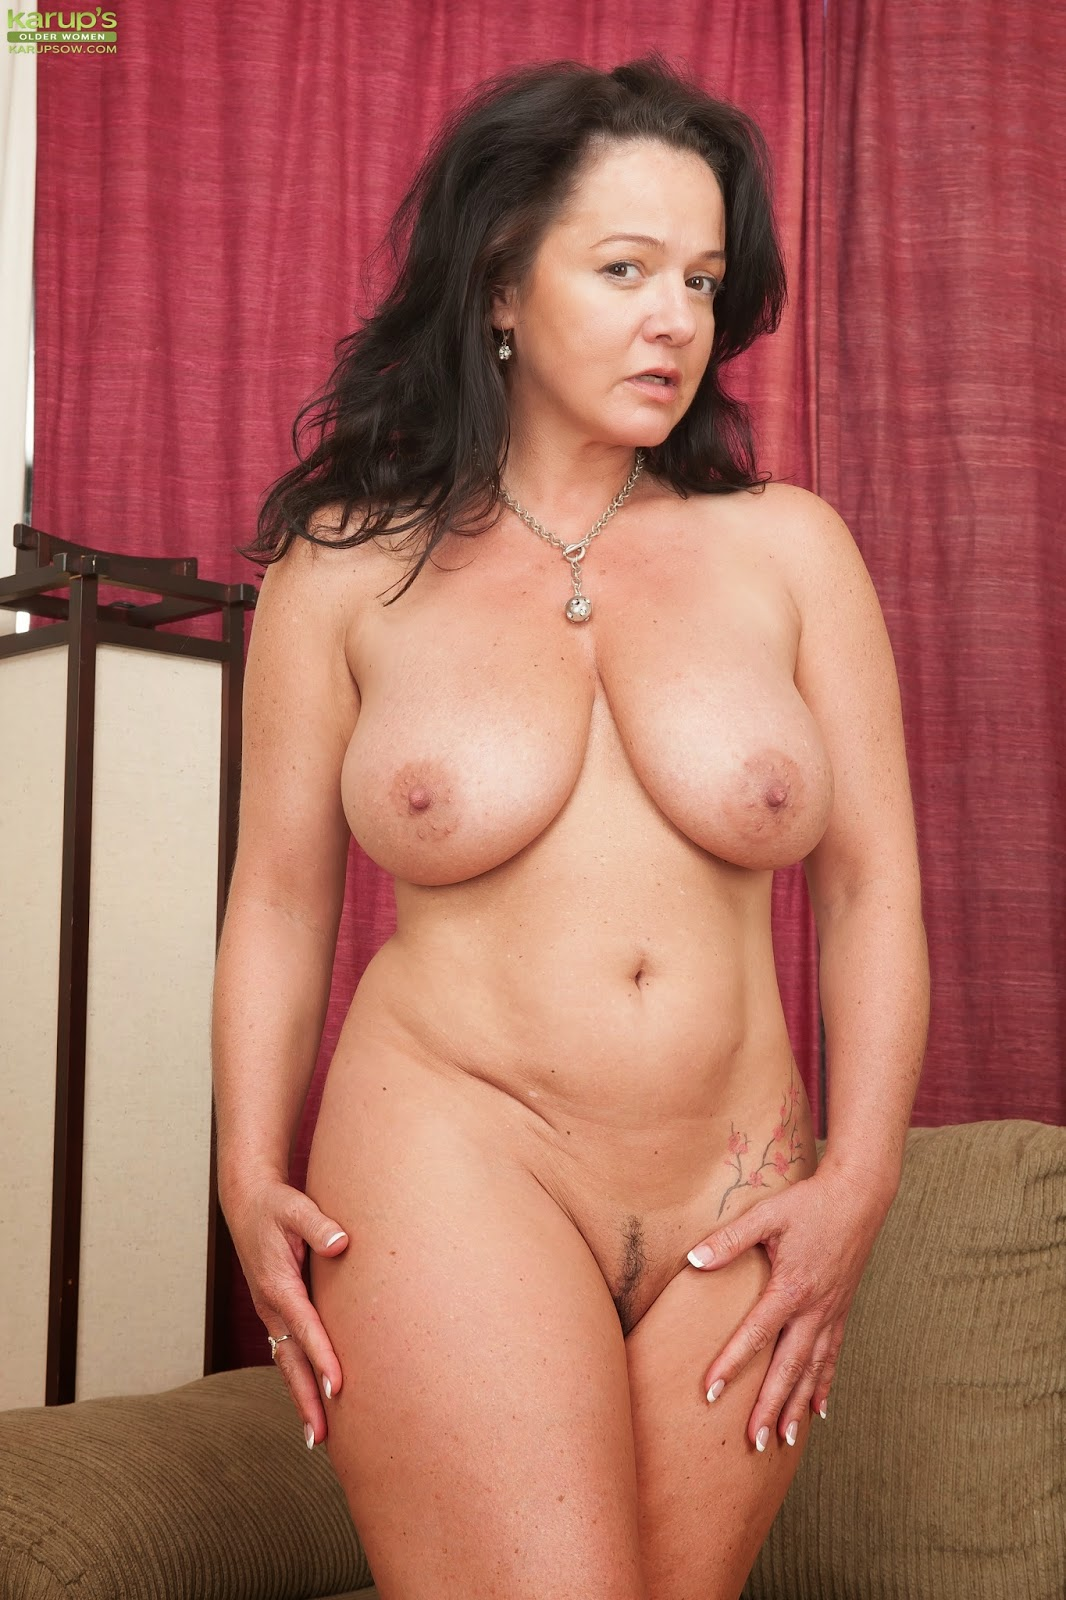 Busty milf alesia pleasure is blowing a guy she just met 9